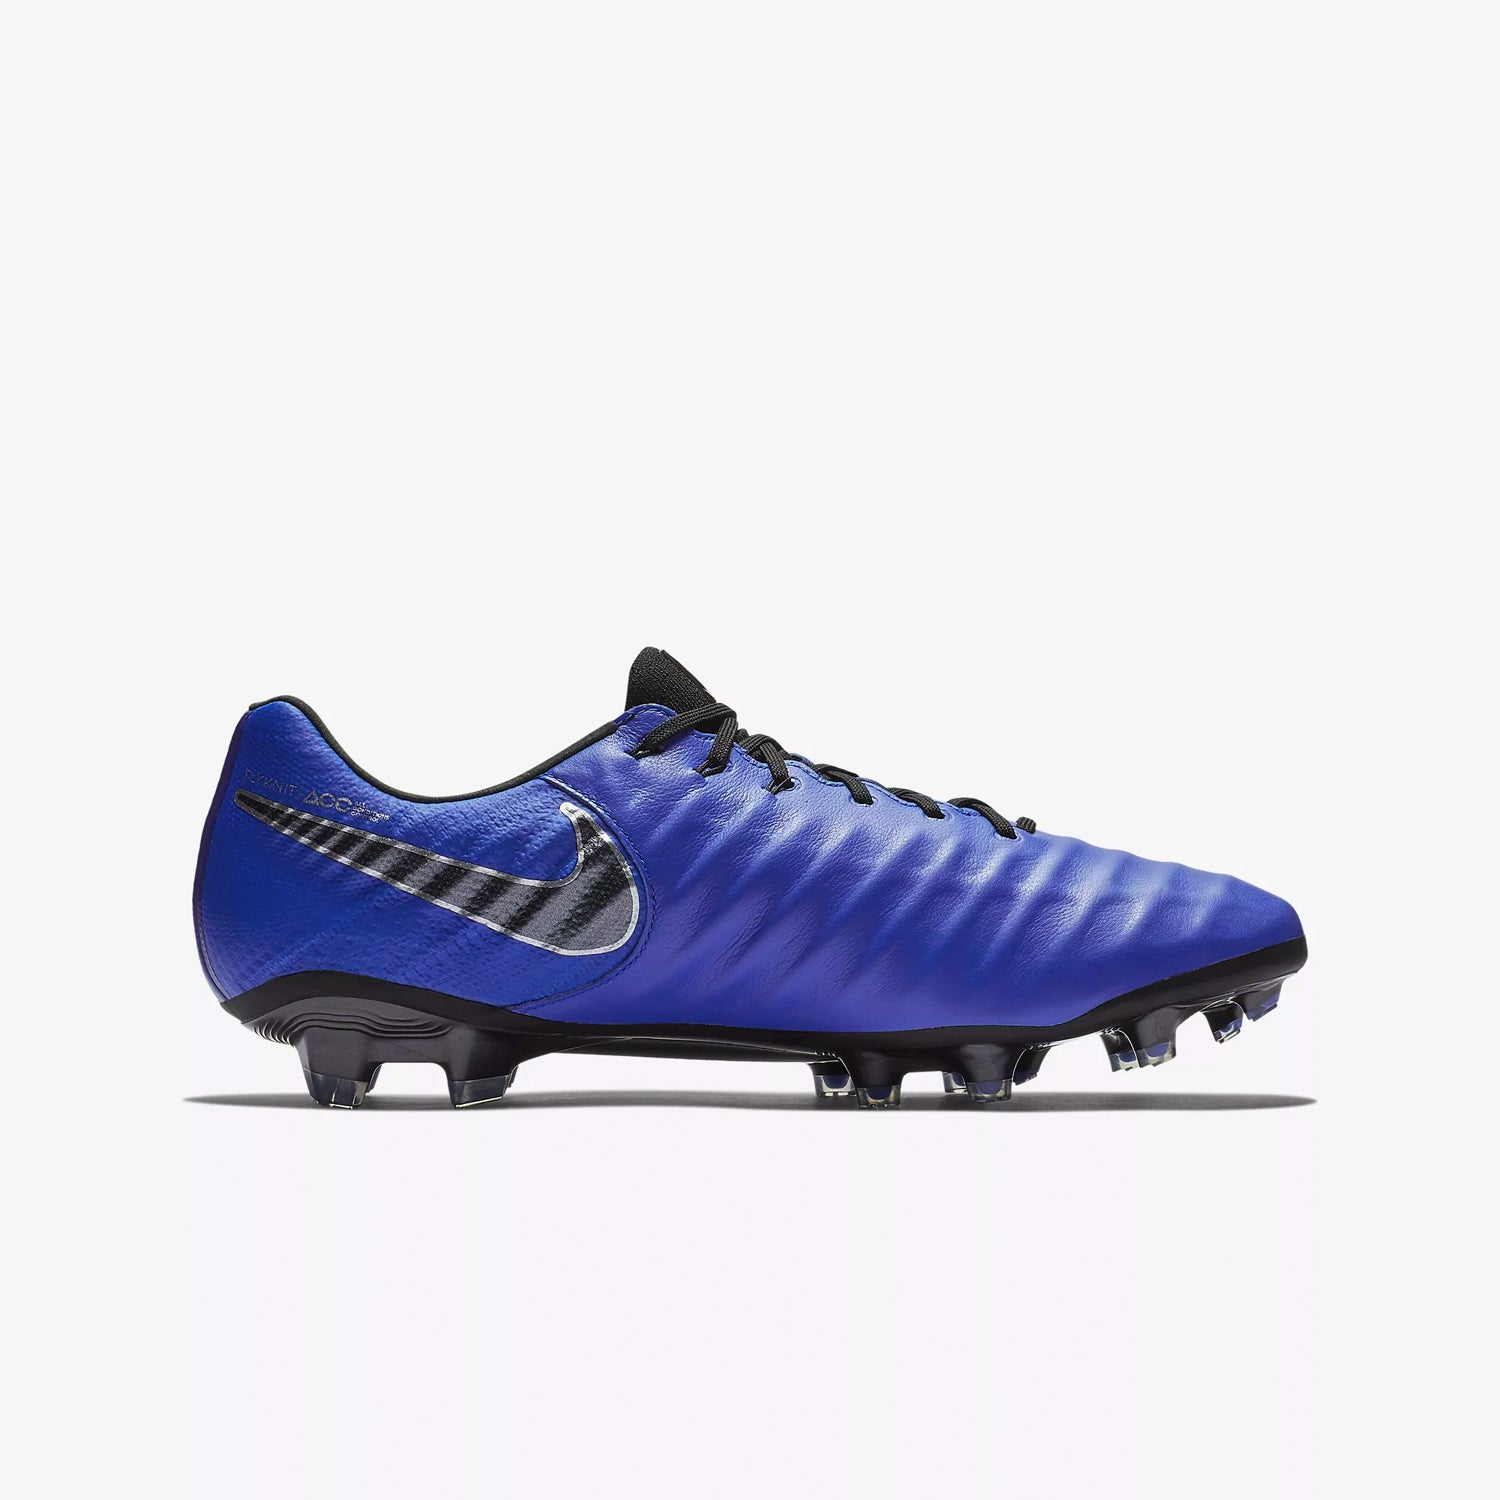 Men's Tiempo Legend 7 Elite FG Soccer Cleats - Blue/Silver/Black